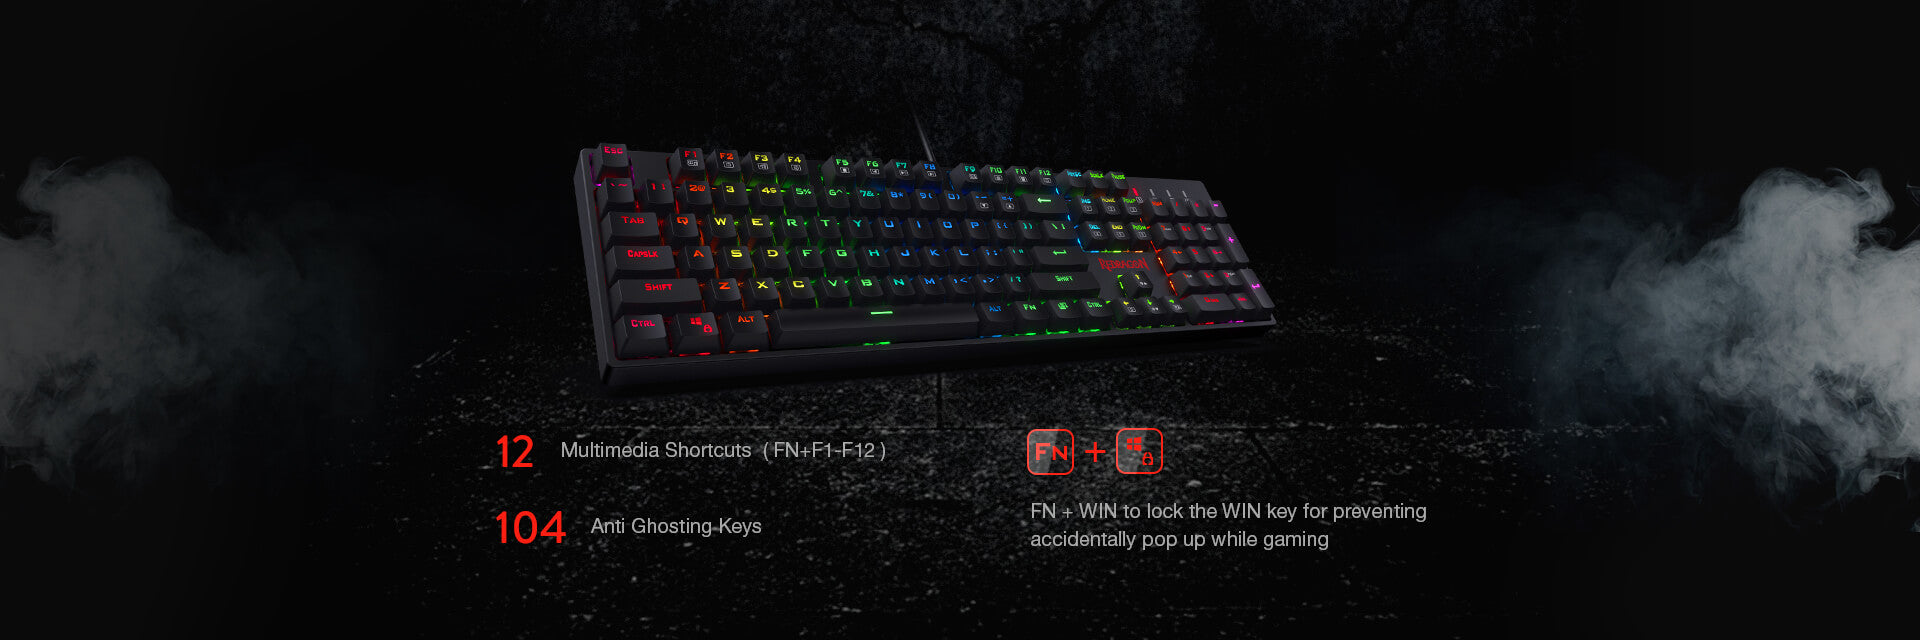 redragon k582-ba combo keyboard and mouse combo